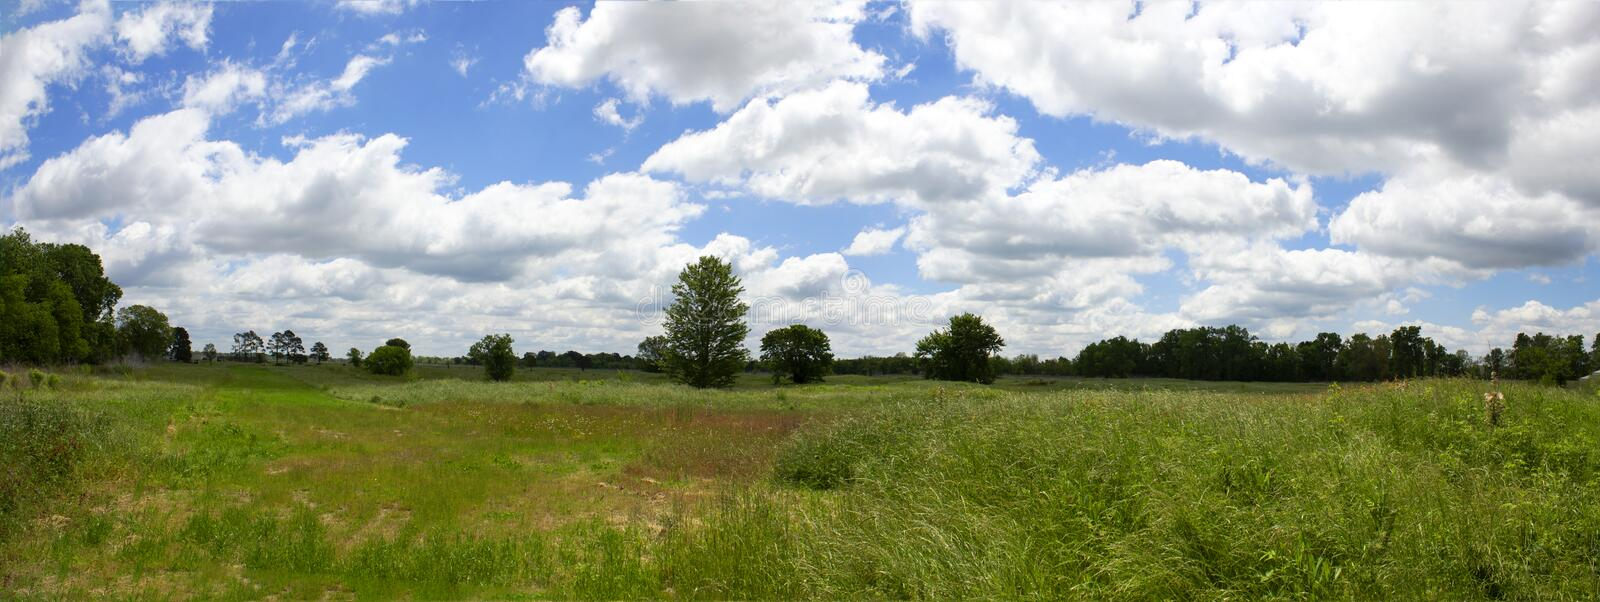 Undeveloped Industrial park under a blue sky full of white fluffy cumulus clouds royalty free stock image